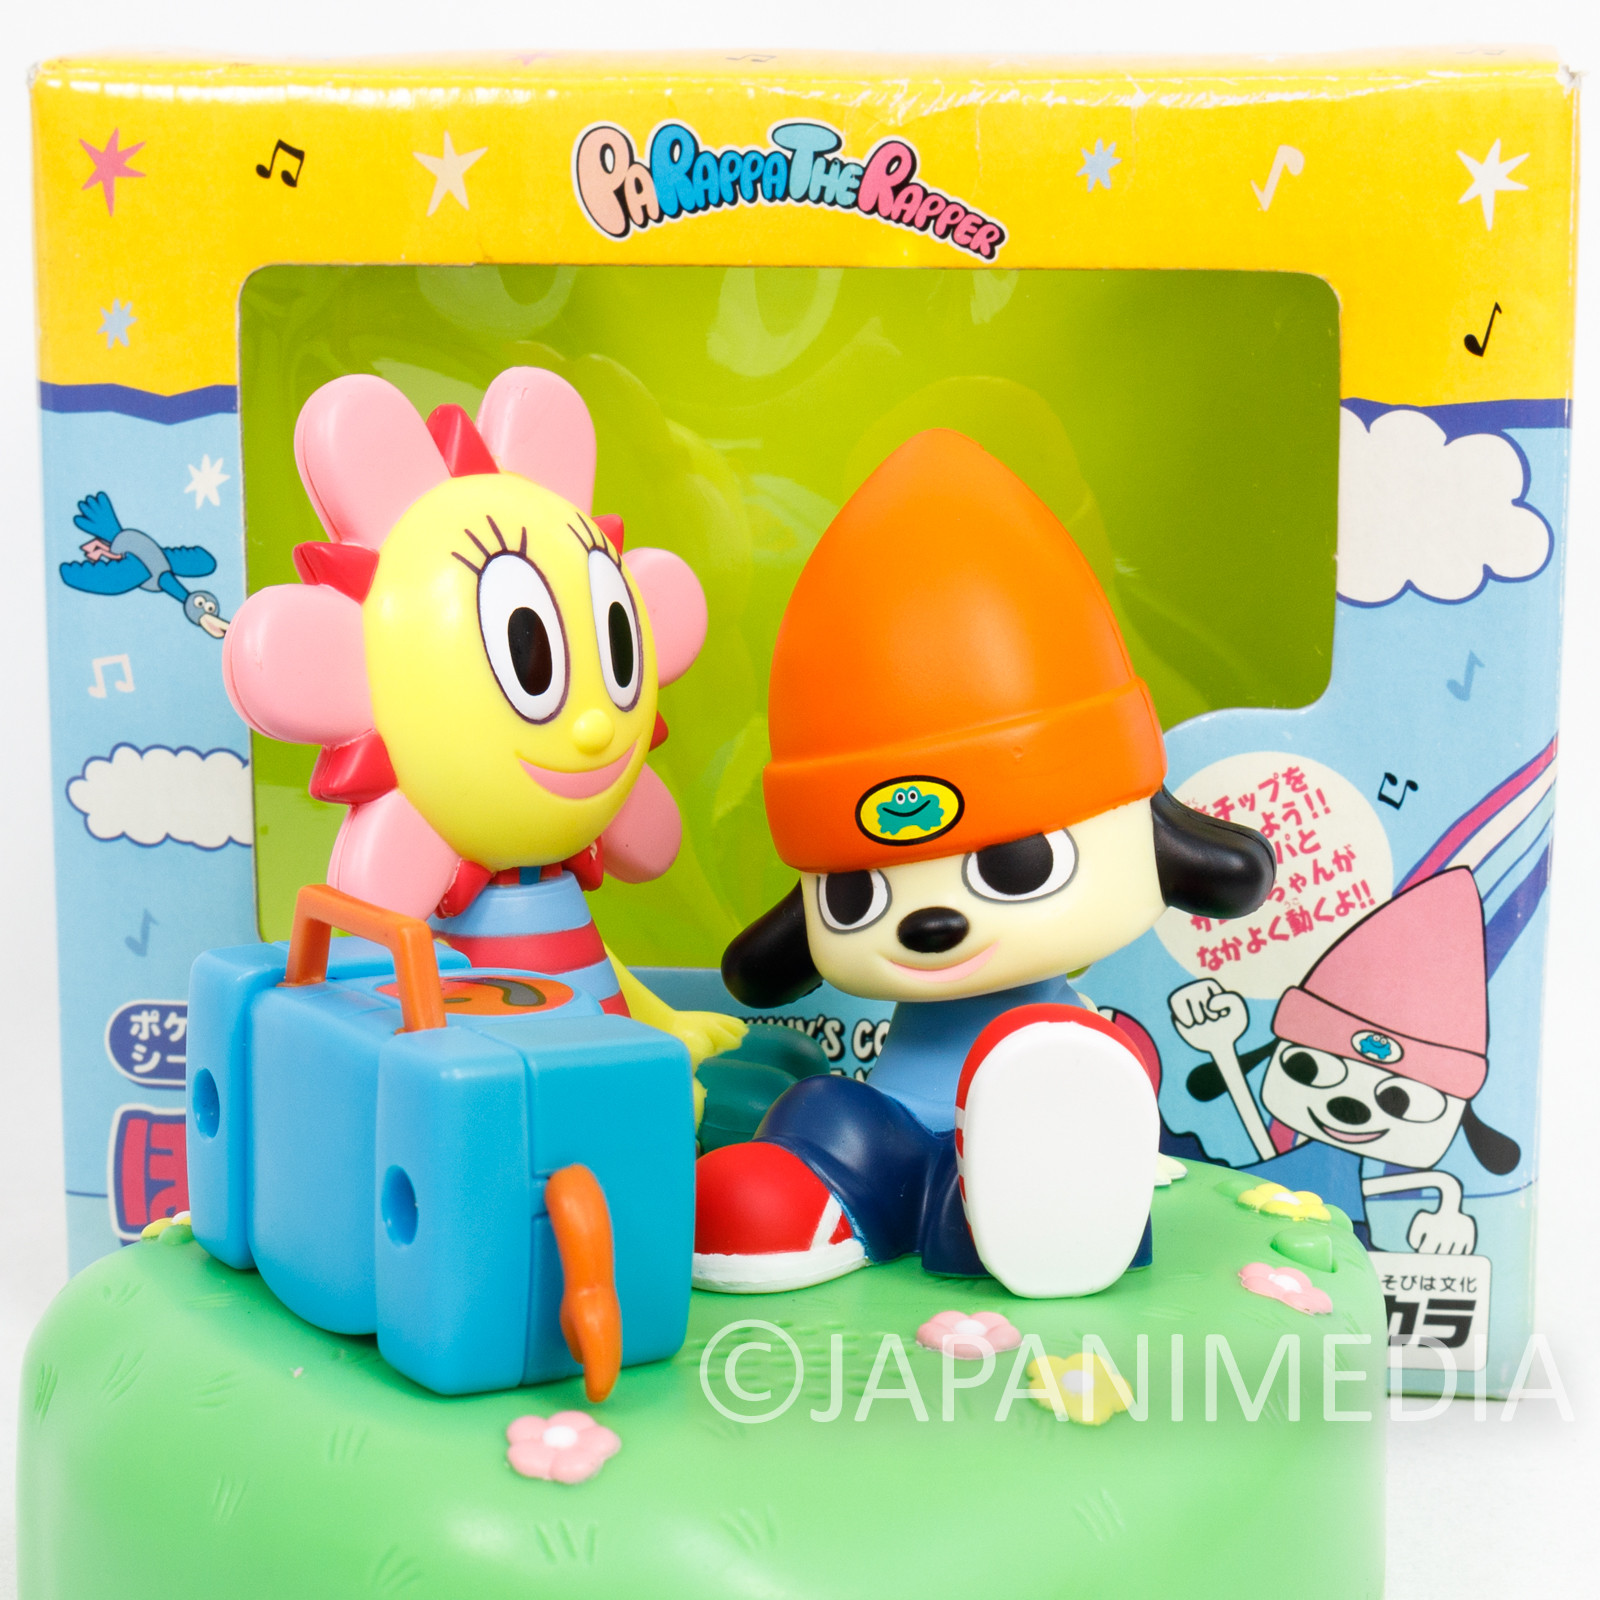 (Out of Order) Parappa The Rapper Honobono Picnic Electric Powered Action Figure